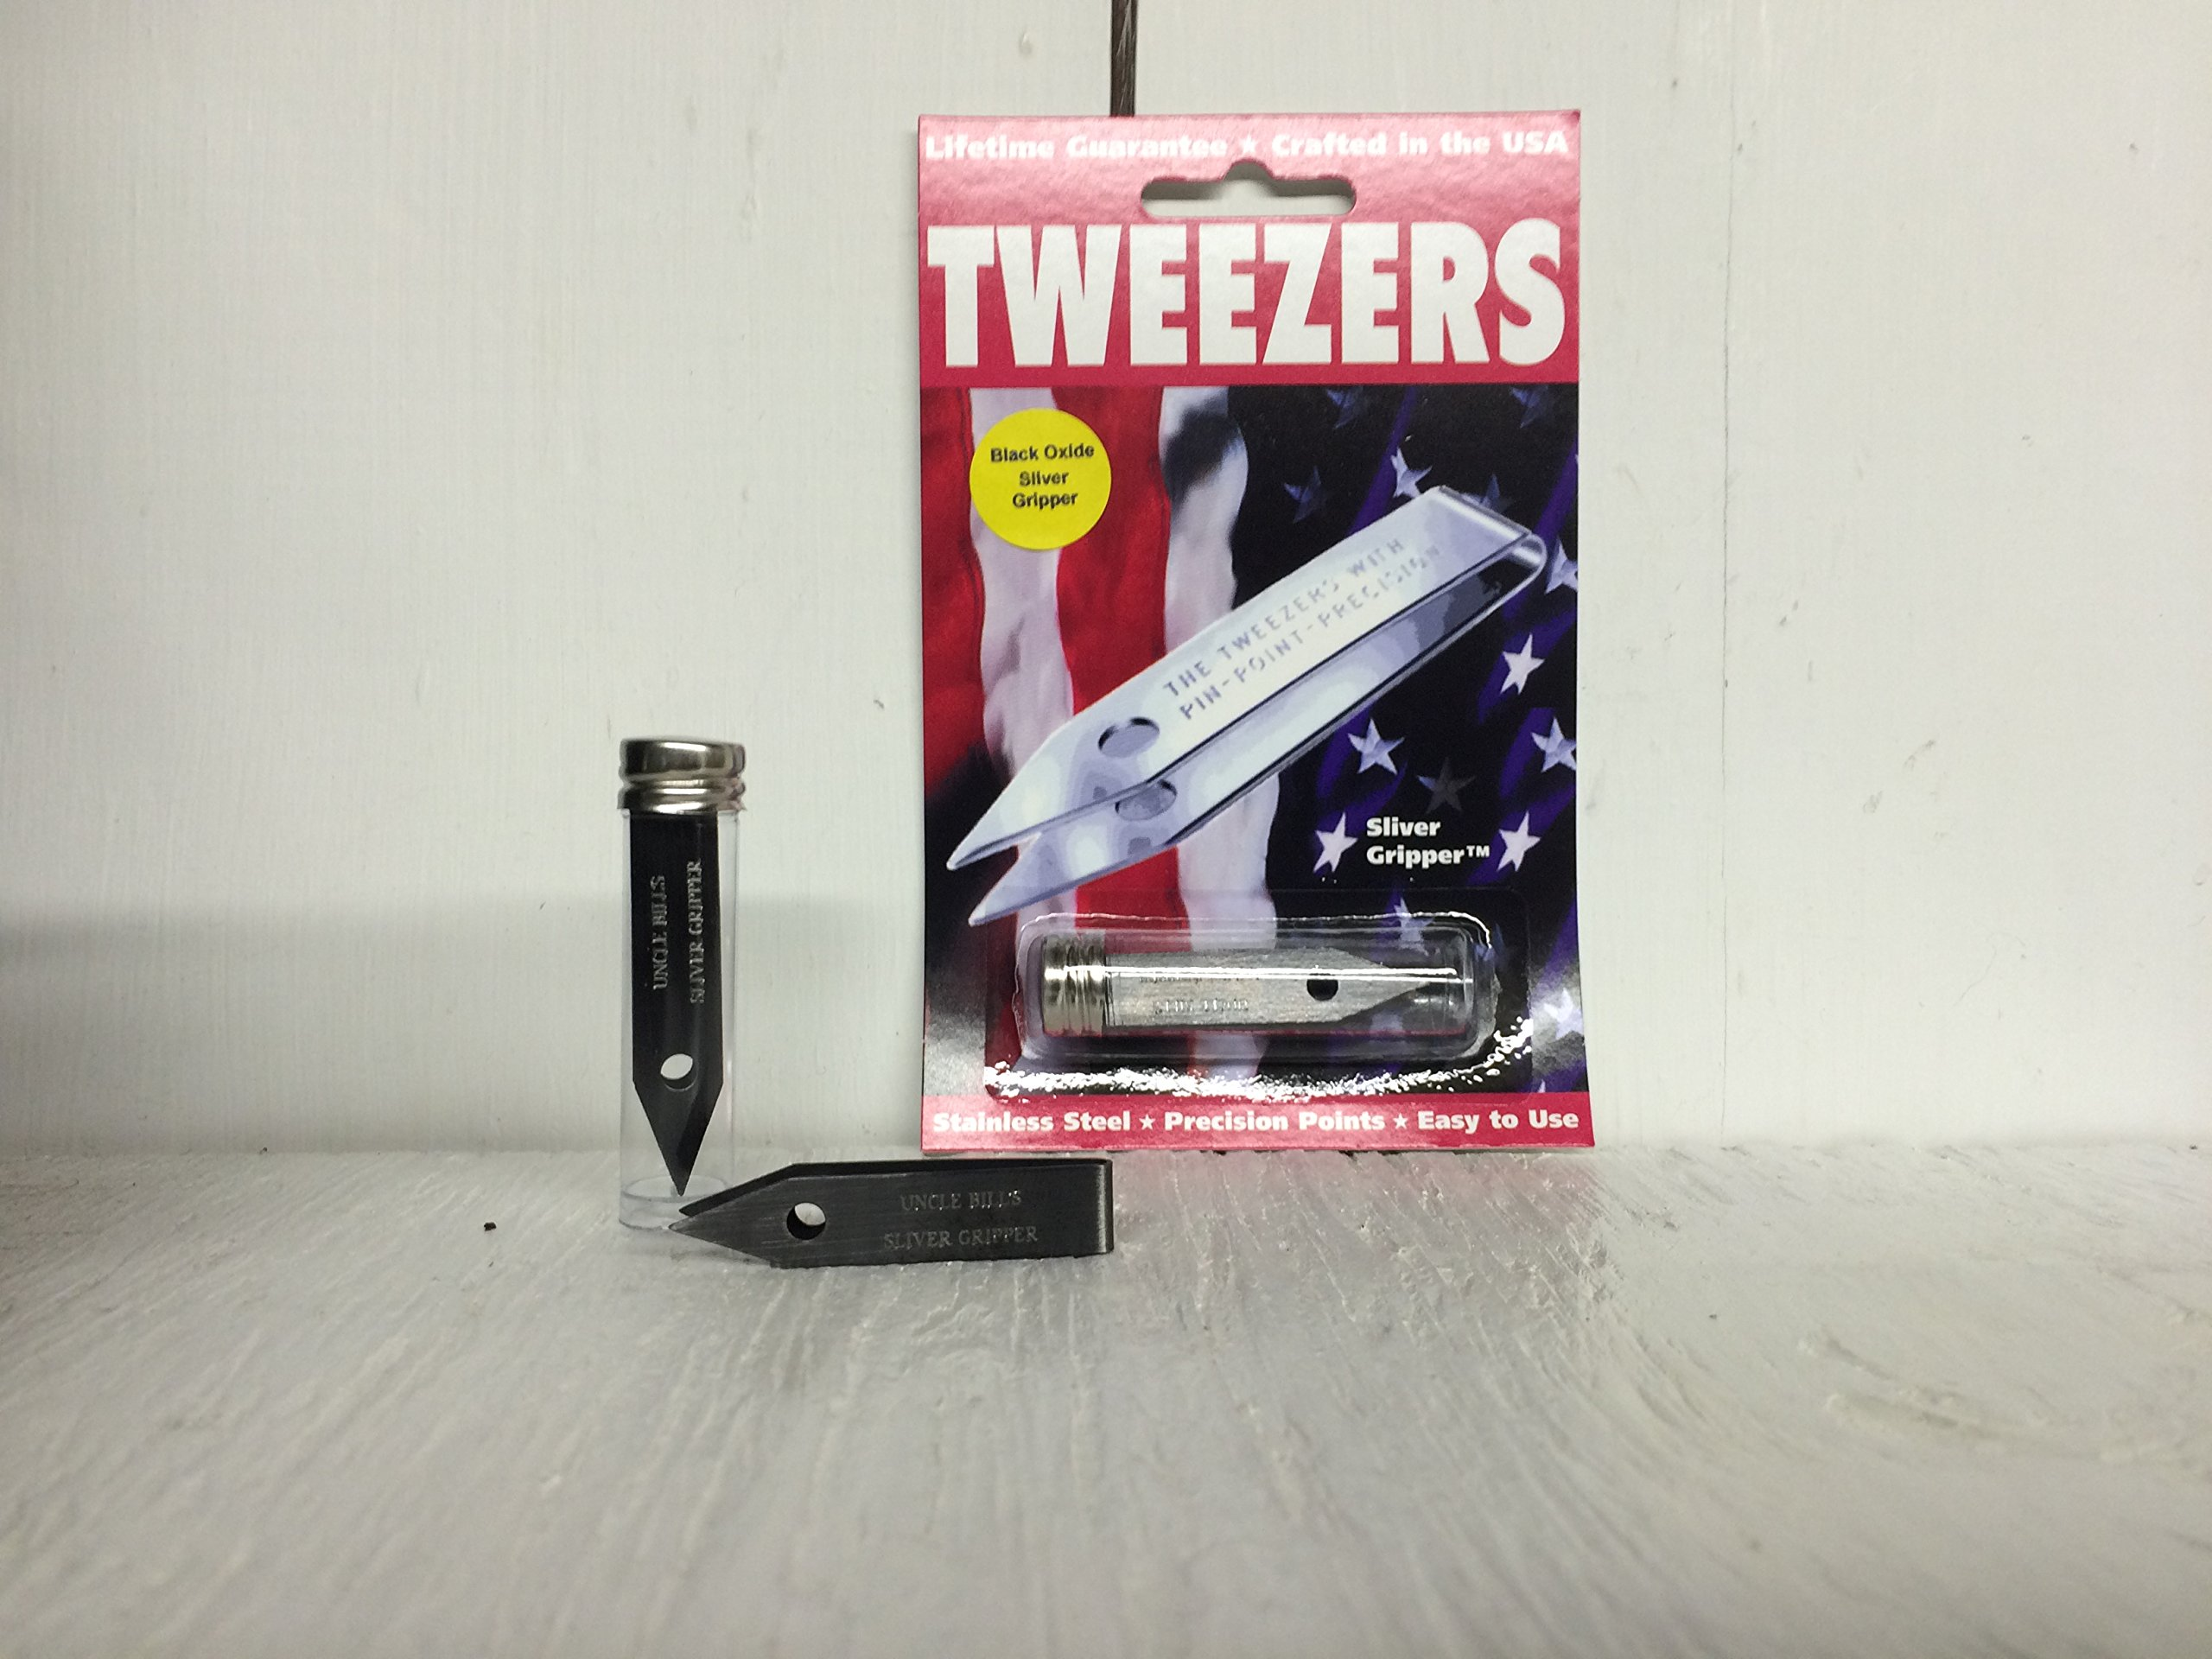 Sliver Gripper Black Oxide Uncle Bill's Tweezers in a Recloseable Tube